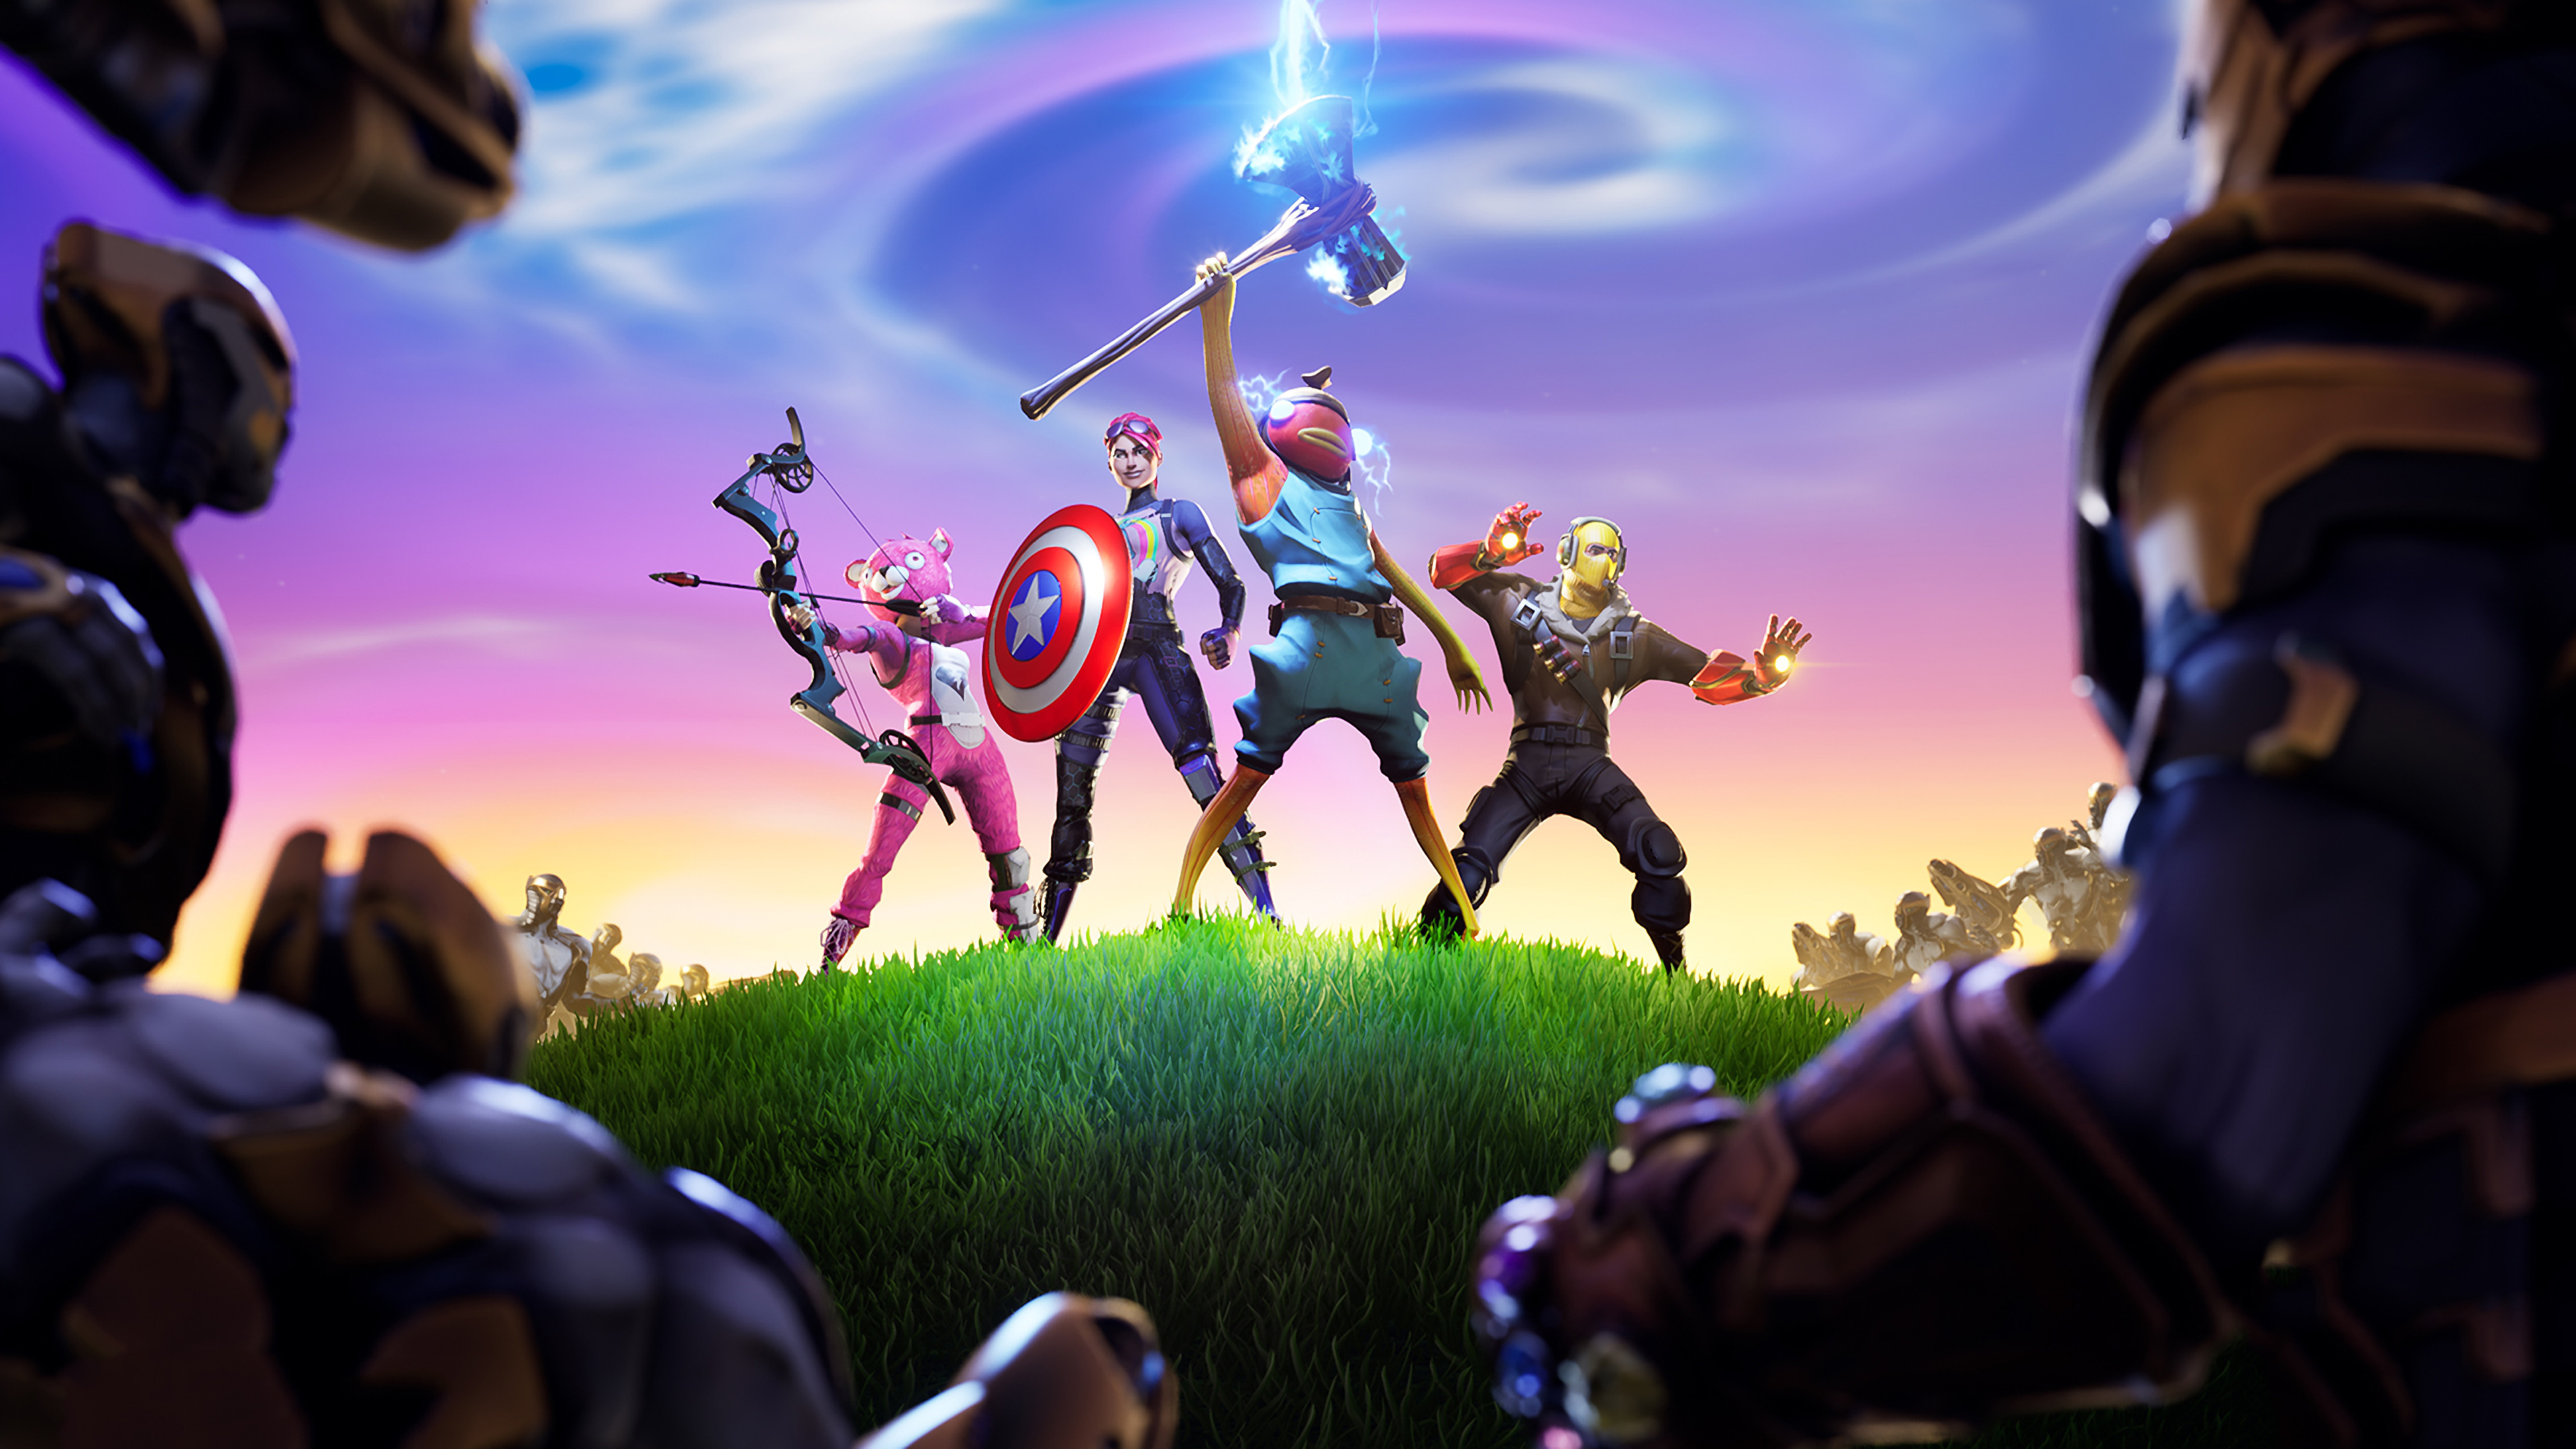 Fortnite X Avengers Hd Games 4k Wallpapers Images